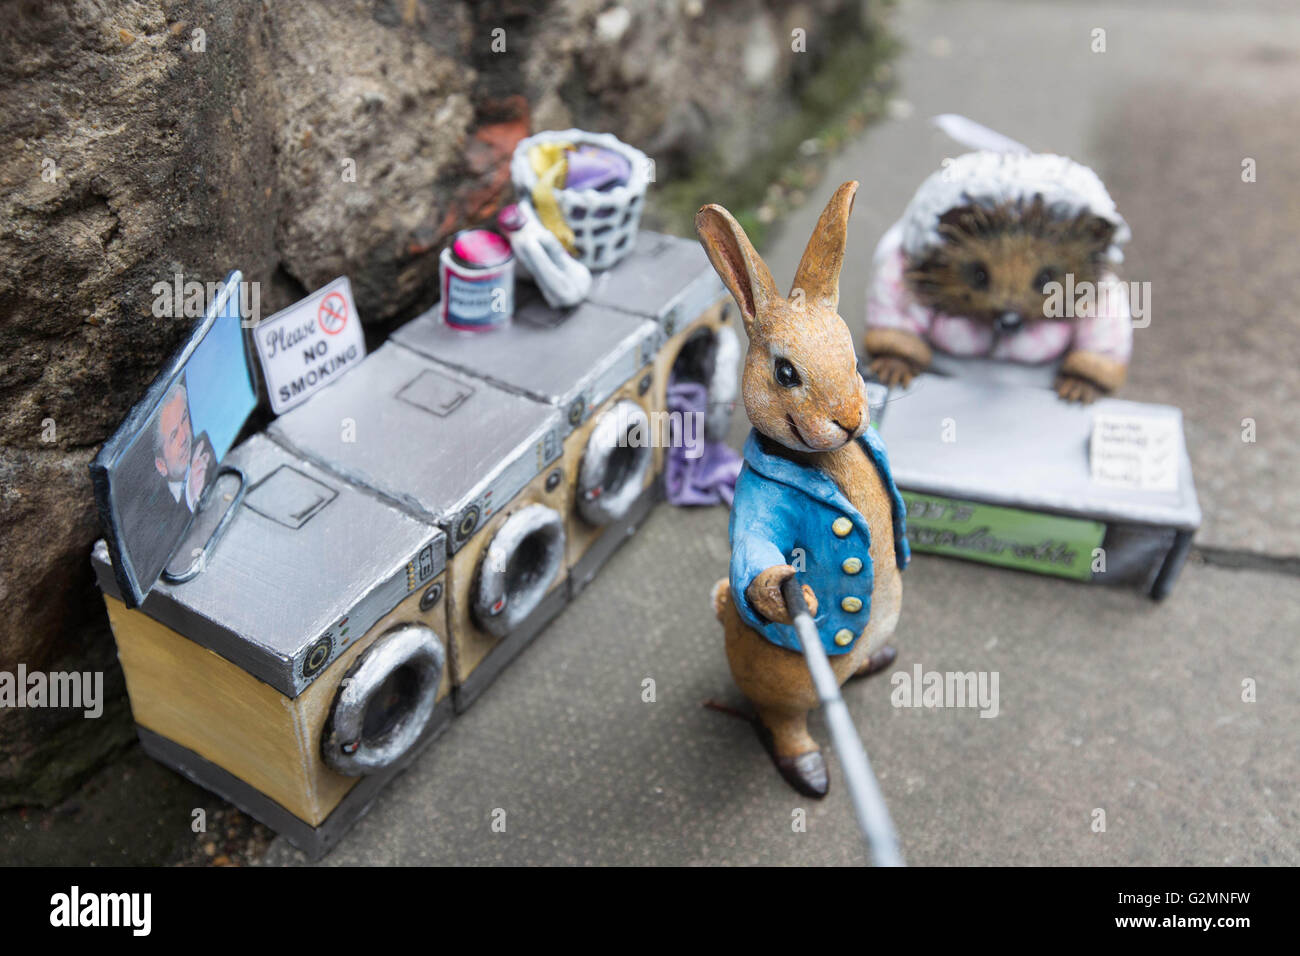 EDITORIAL USE ONLY Miniature sculptures of Beatrix Potter characters Mrs. Tiggy-Winkle and Peter Rabbit, which have - Stock Image